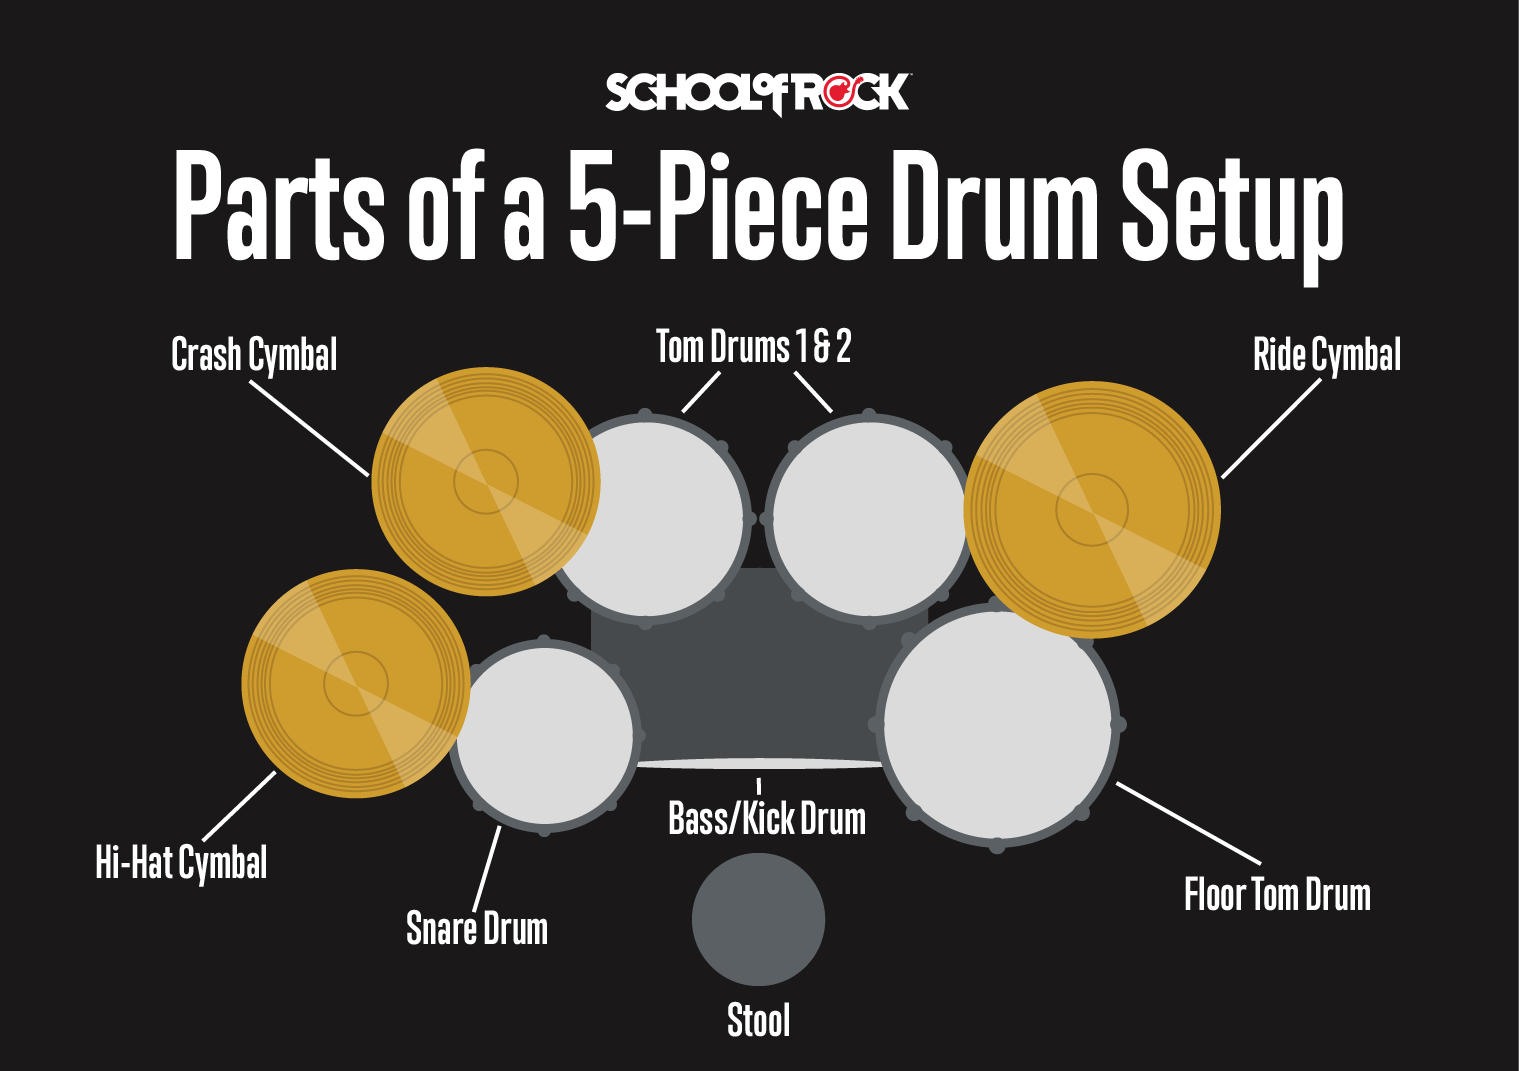 Drum kit setup diagram